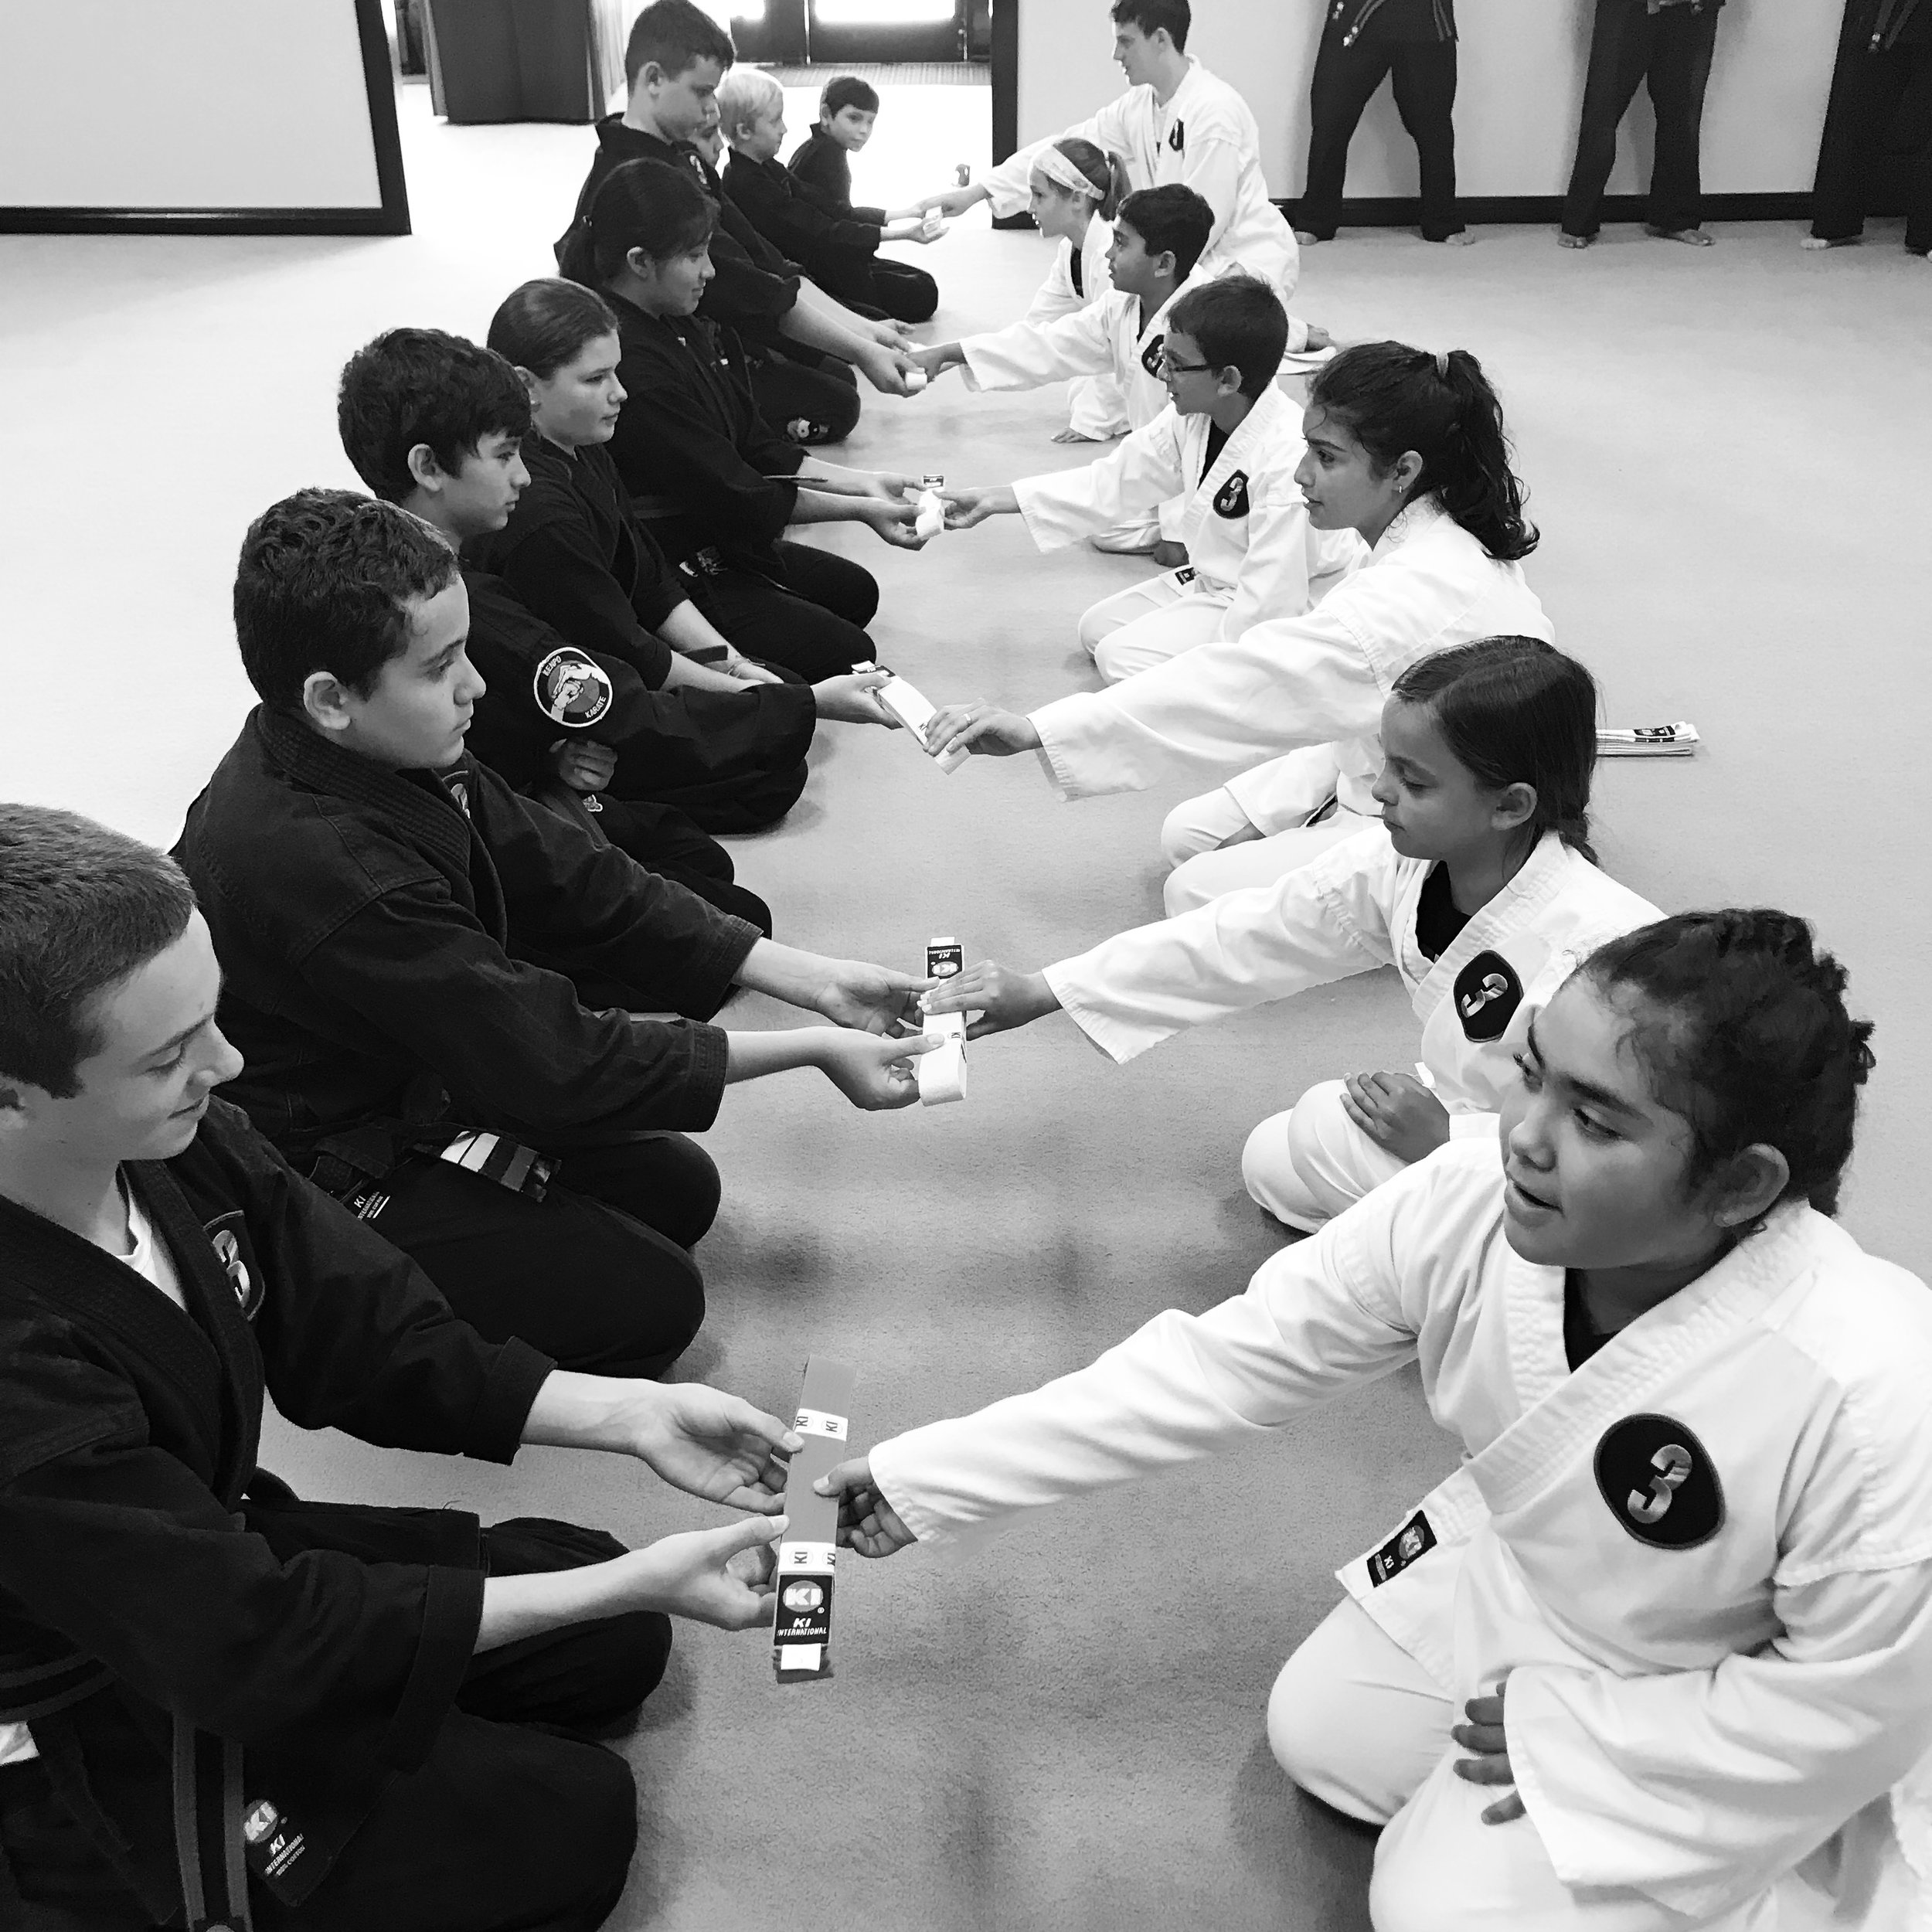 Karate classes for kids near me